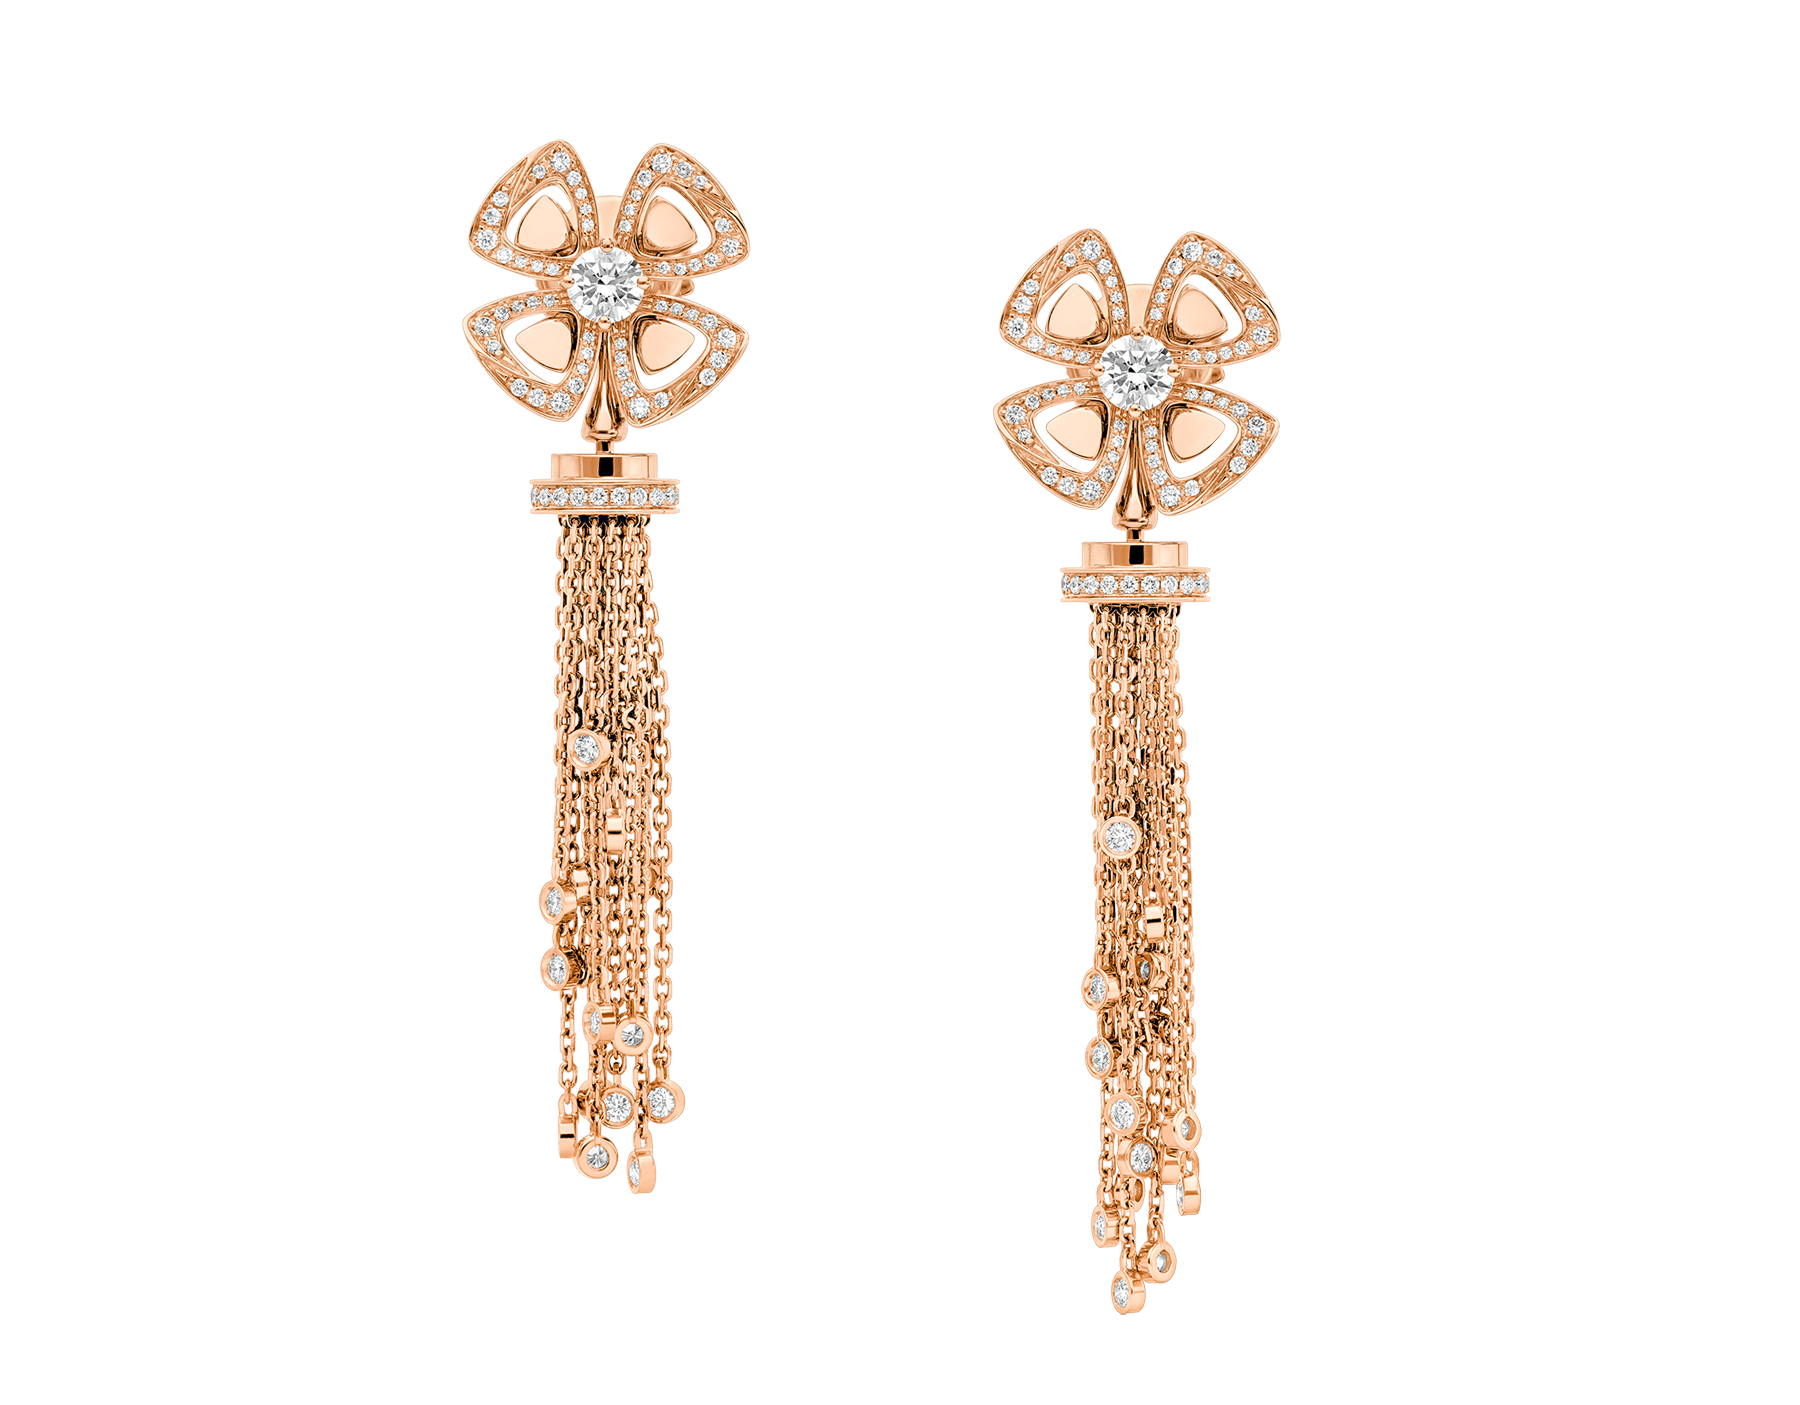 Fiorever 18 kt rose gold pendant earring, set with round brilliant-cut diamonds and pavé diamonds. 357322 image 1